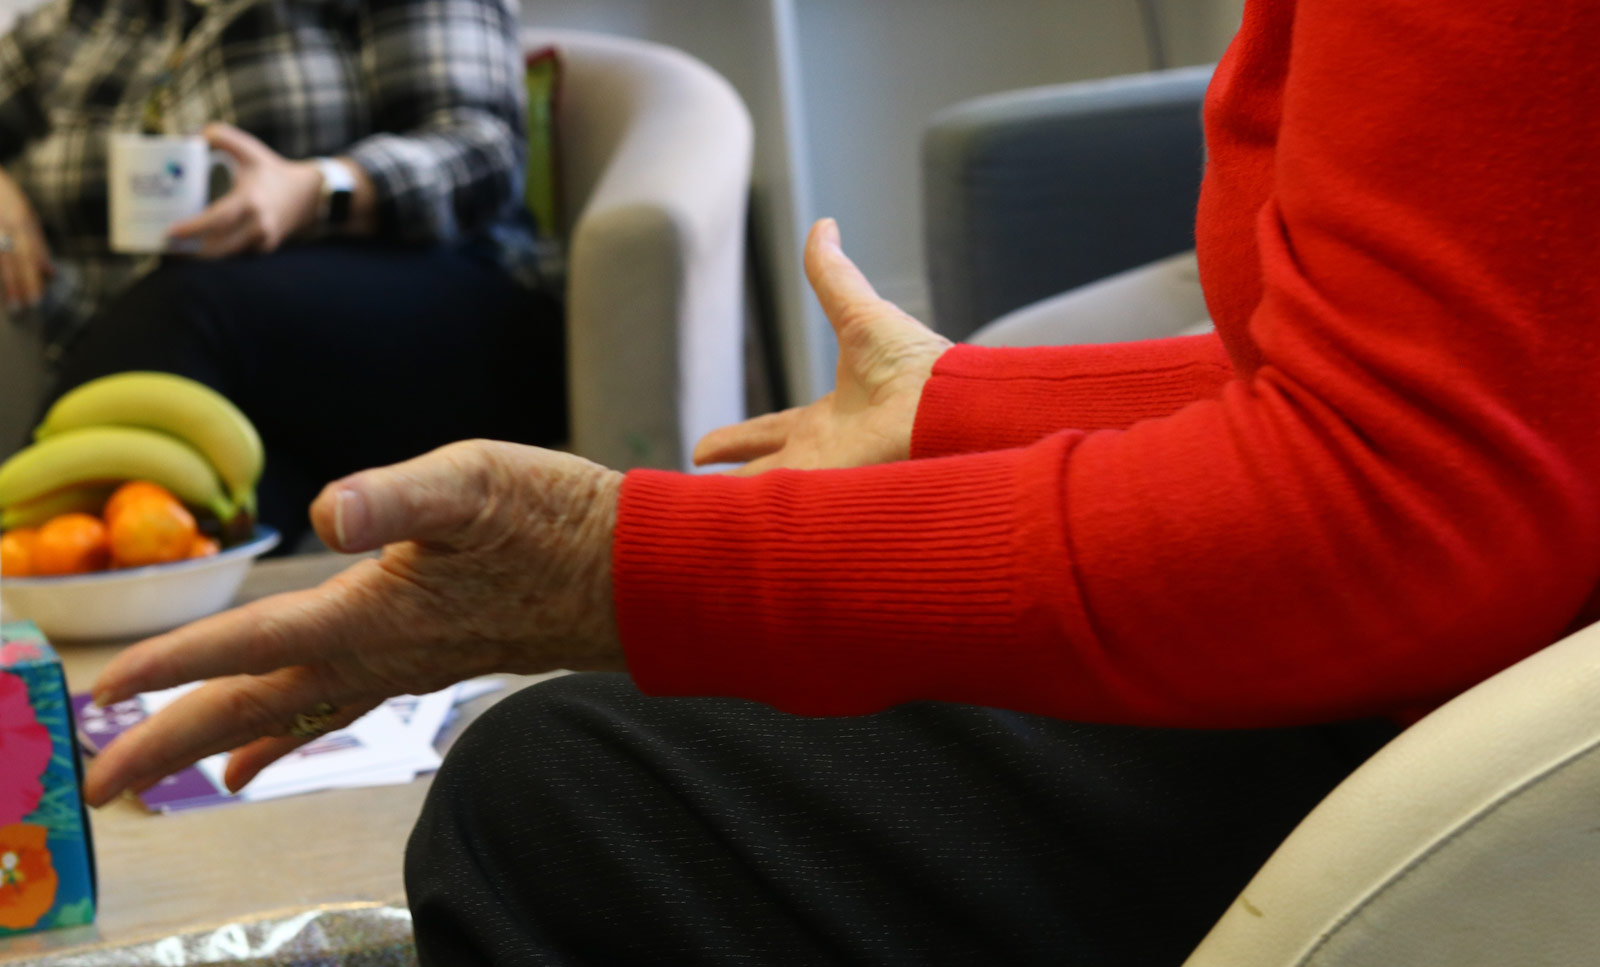 A woman in counselling in a red sweater gesticulating with hands